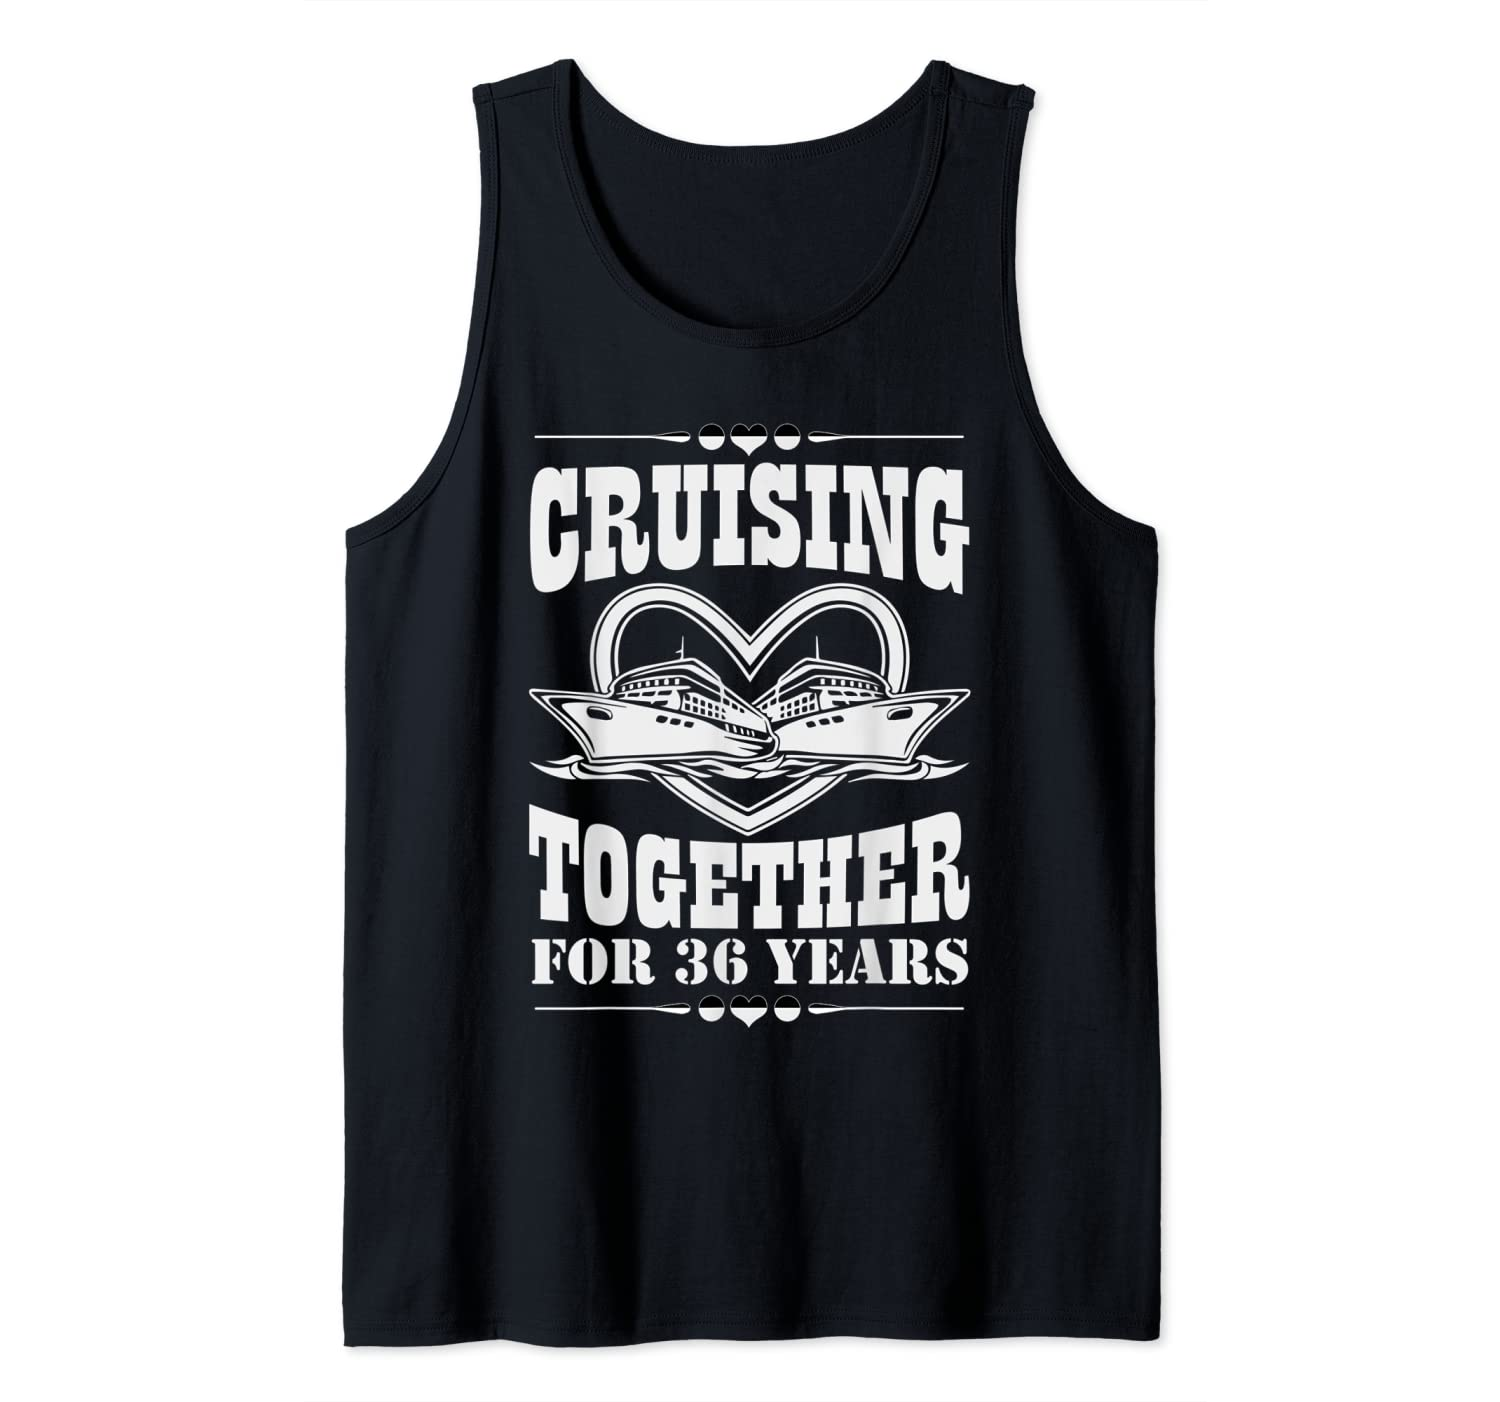 Great Wedding Anniversary Gifts: 36th Wedding Anniversary Gift Cruising Together For 36